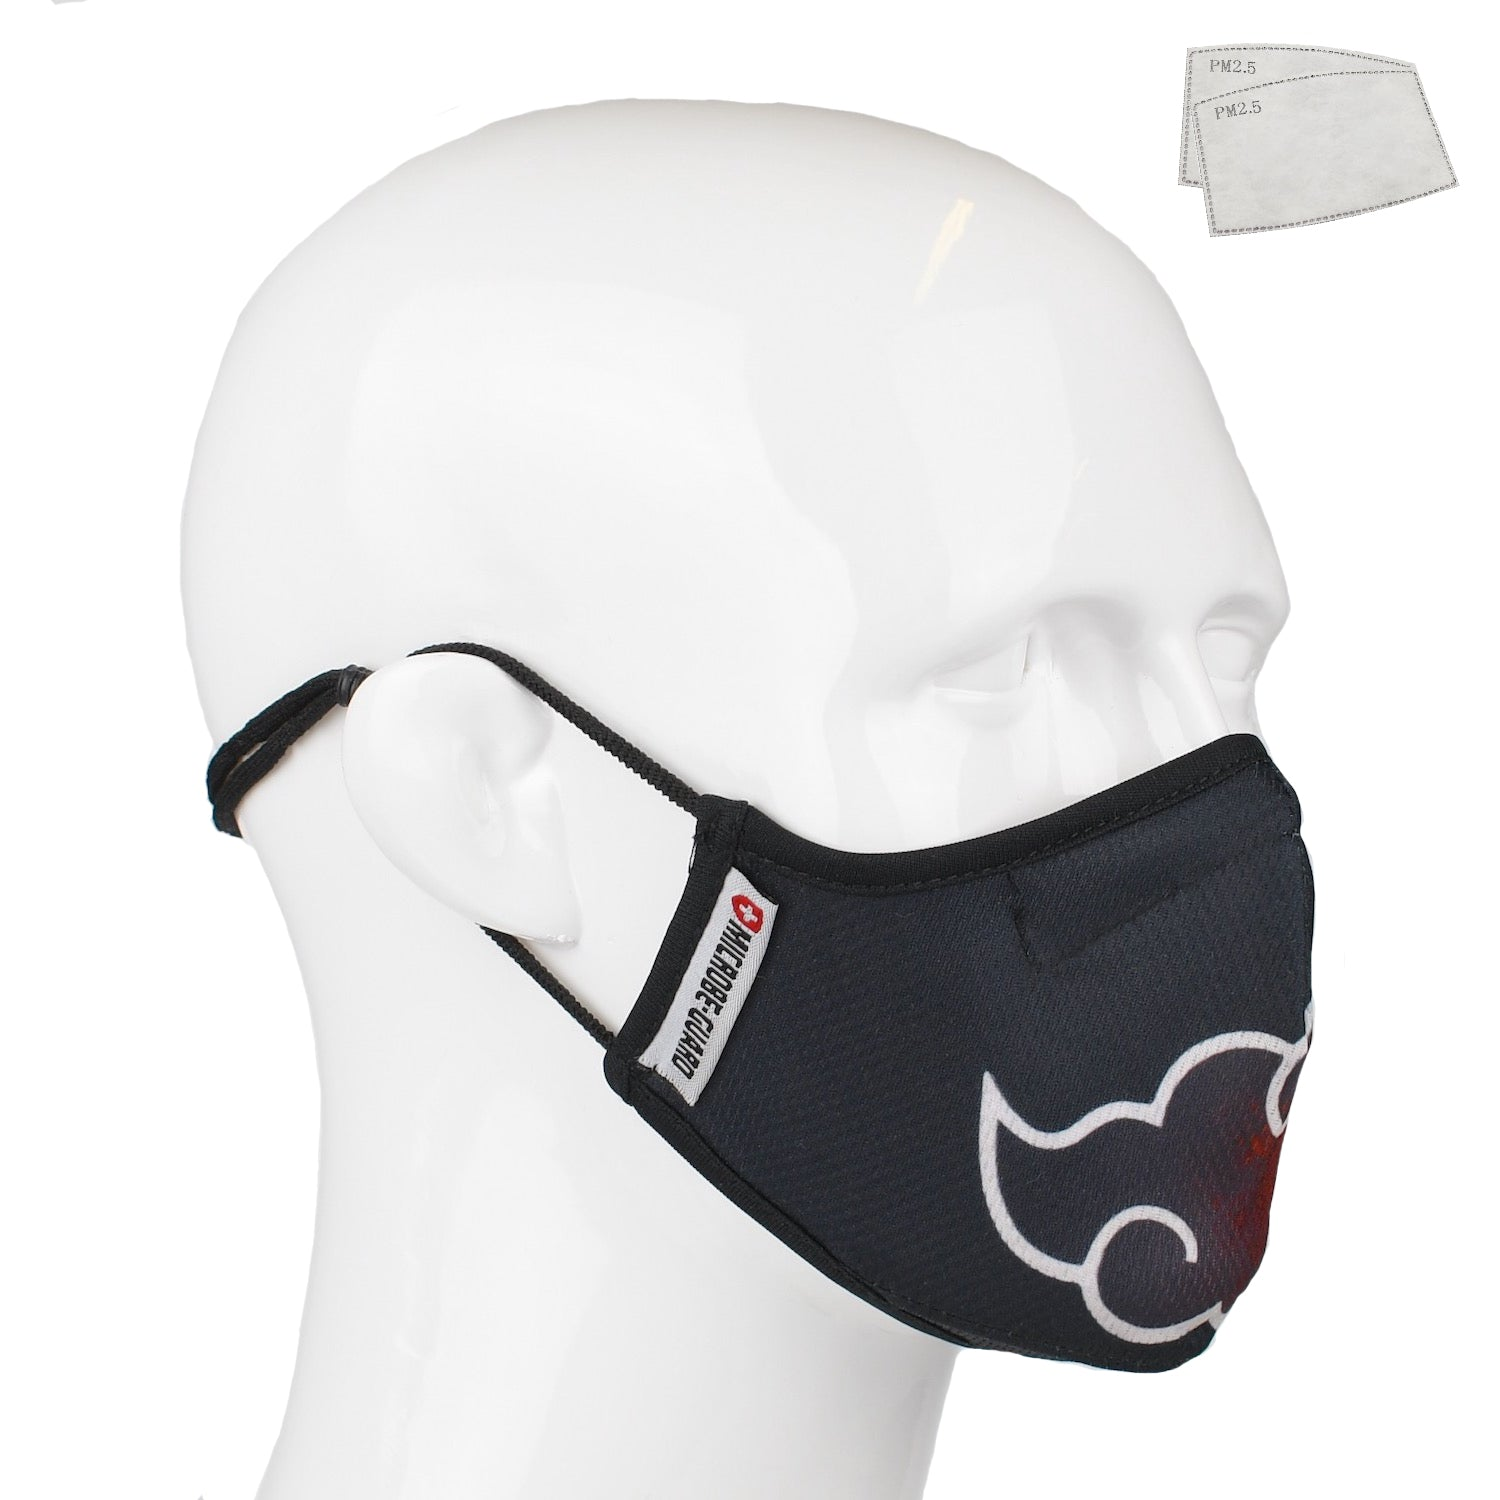 Aegis 2.0 Anime N. Form-Fitting Performance Face Mask with Microbe-Guard